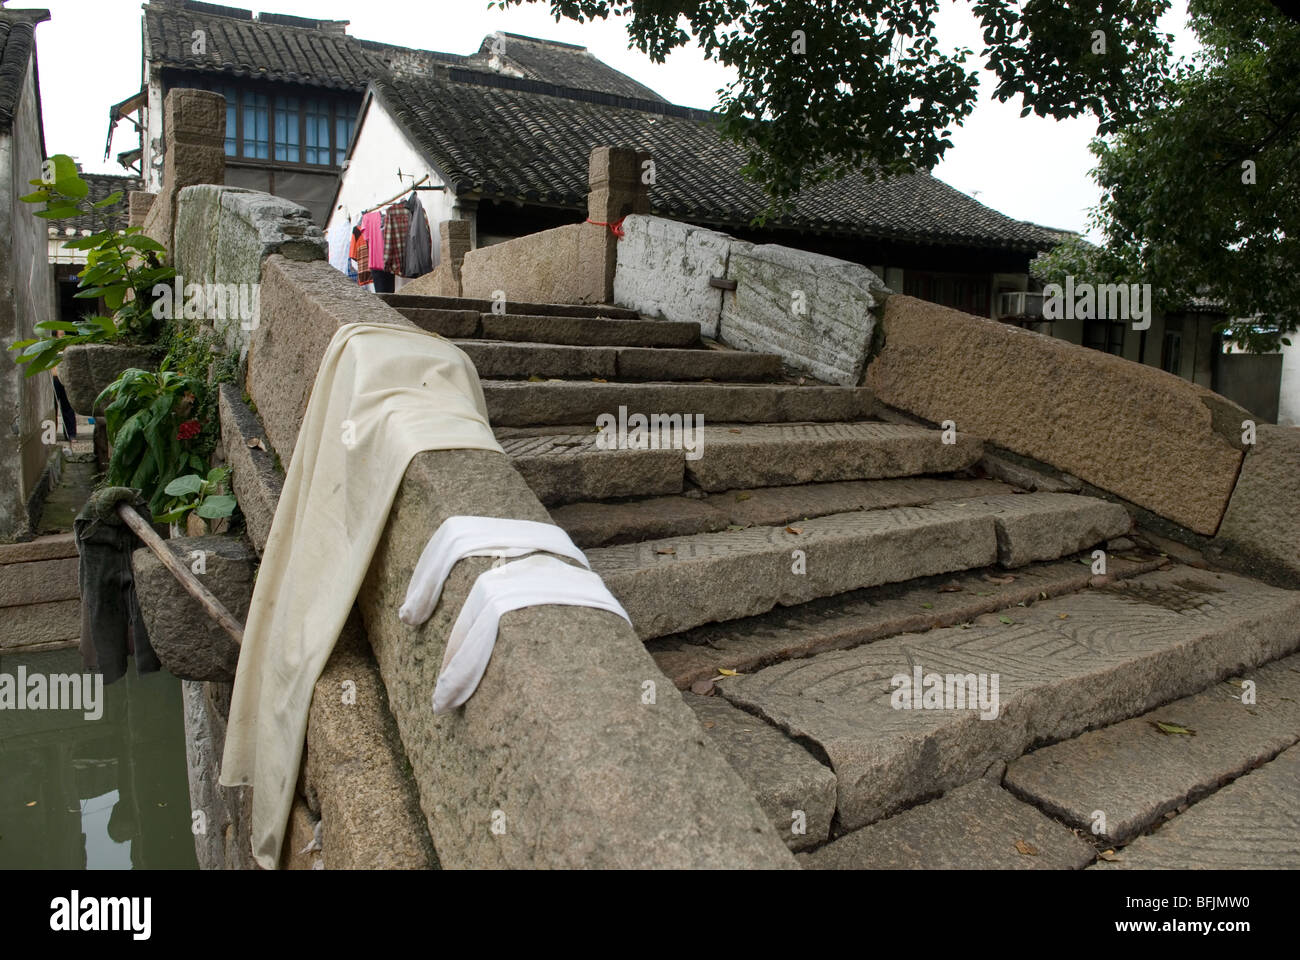 One of the arched bridges in the small ancient town of Luzhi, Jiangsu province, China. - Stock Image